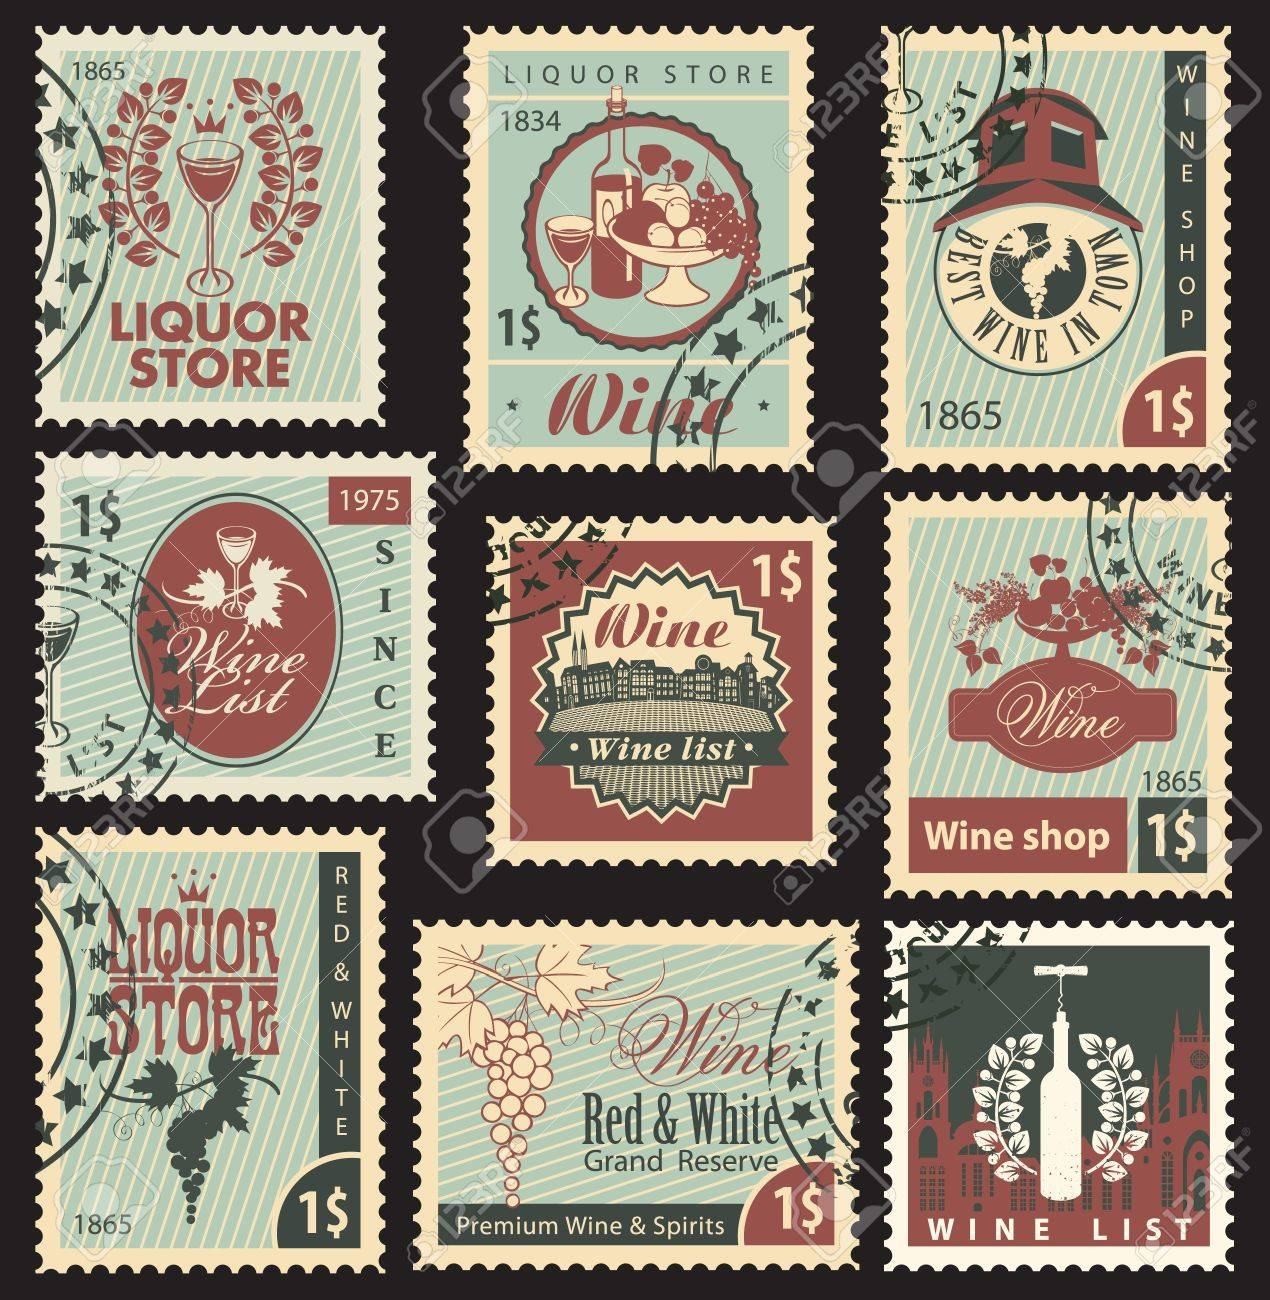 set of postal stamps on theme of wine and liquor - 20659402